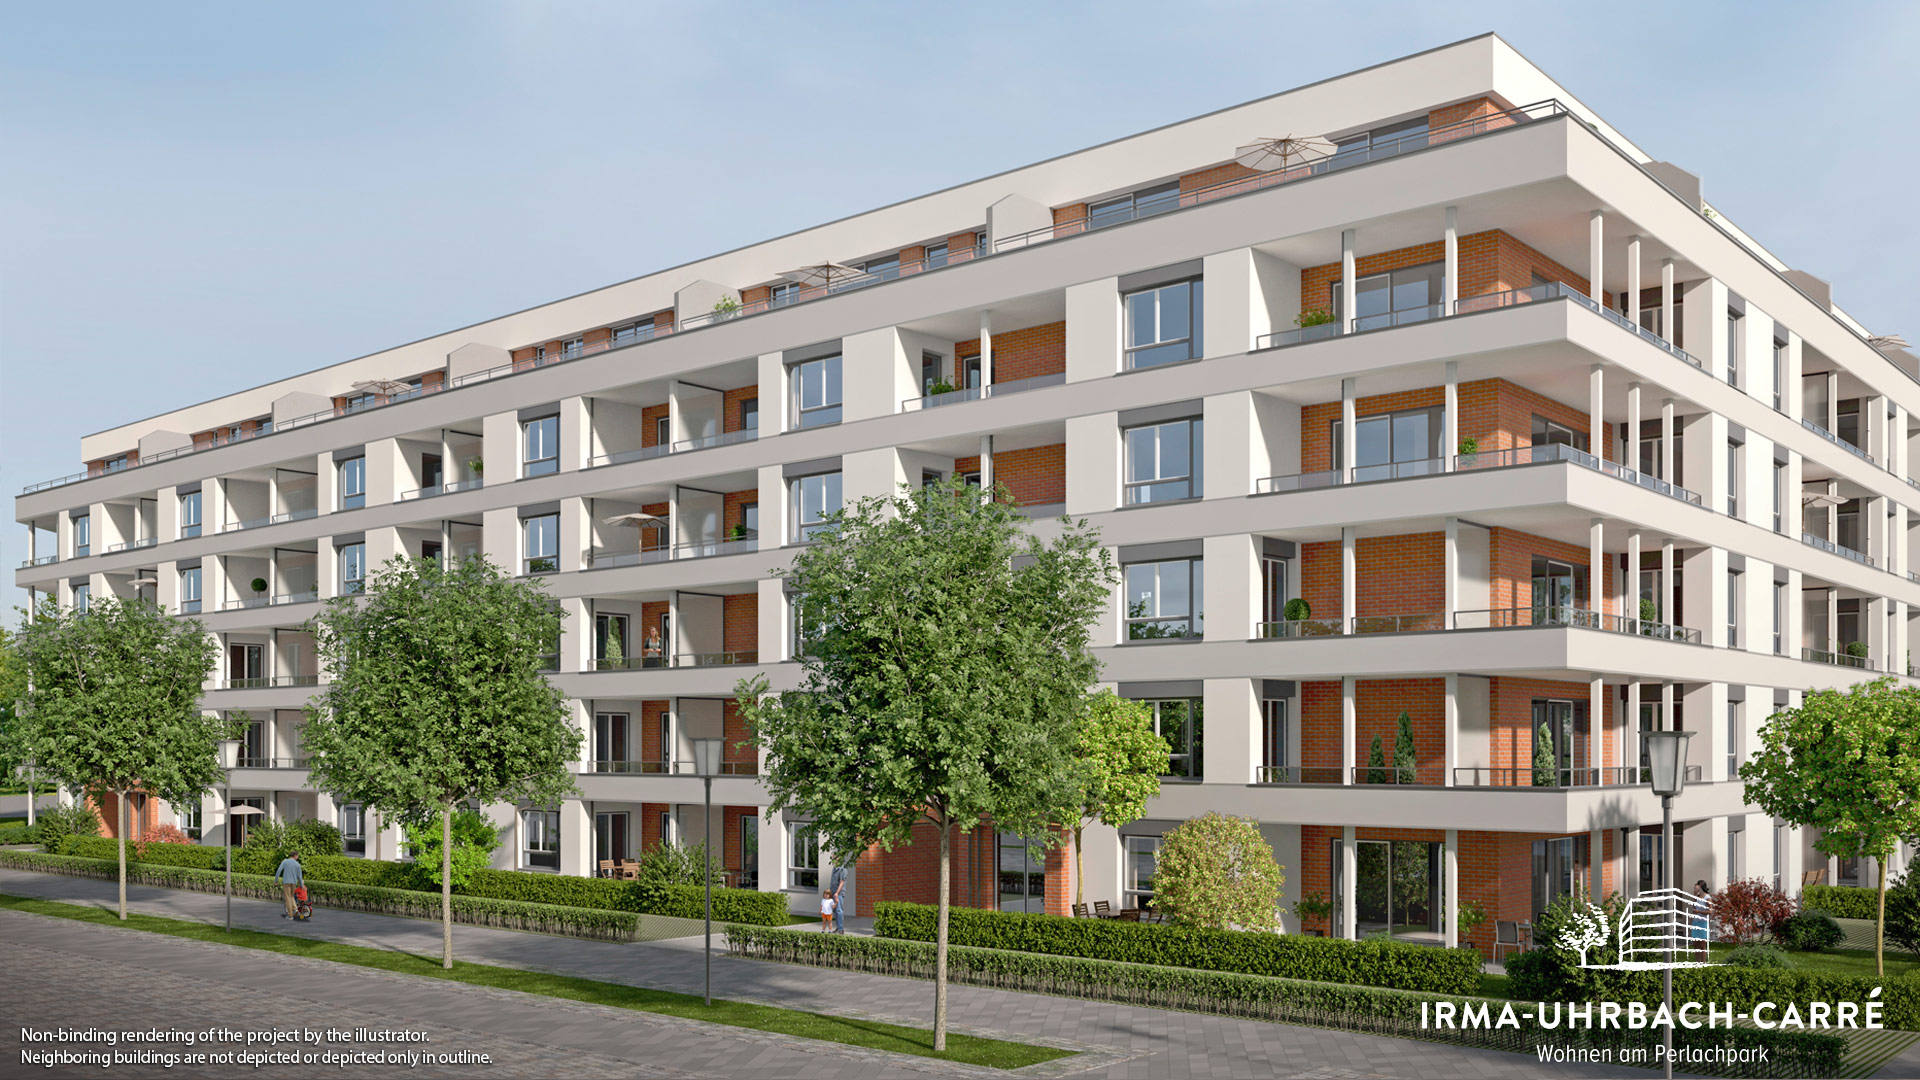 Property Irma-Uhrbach-Carr - Illustration 2